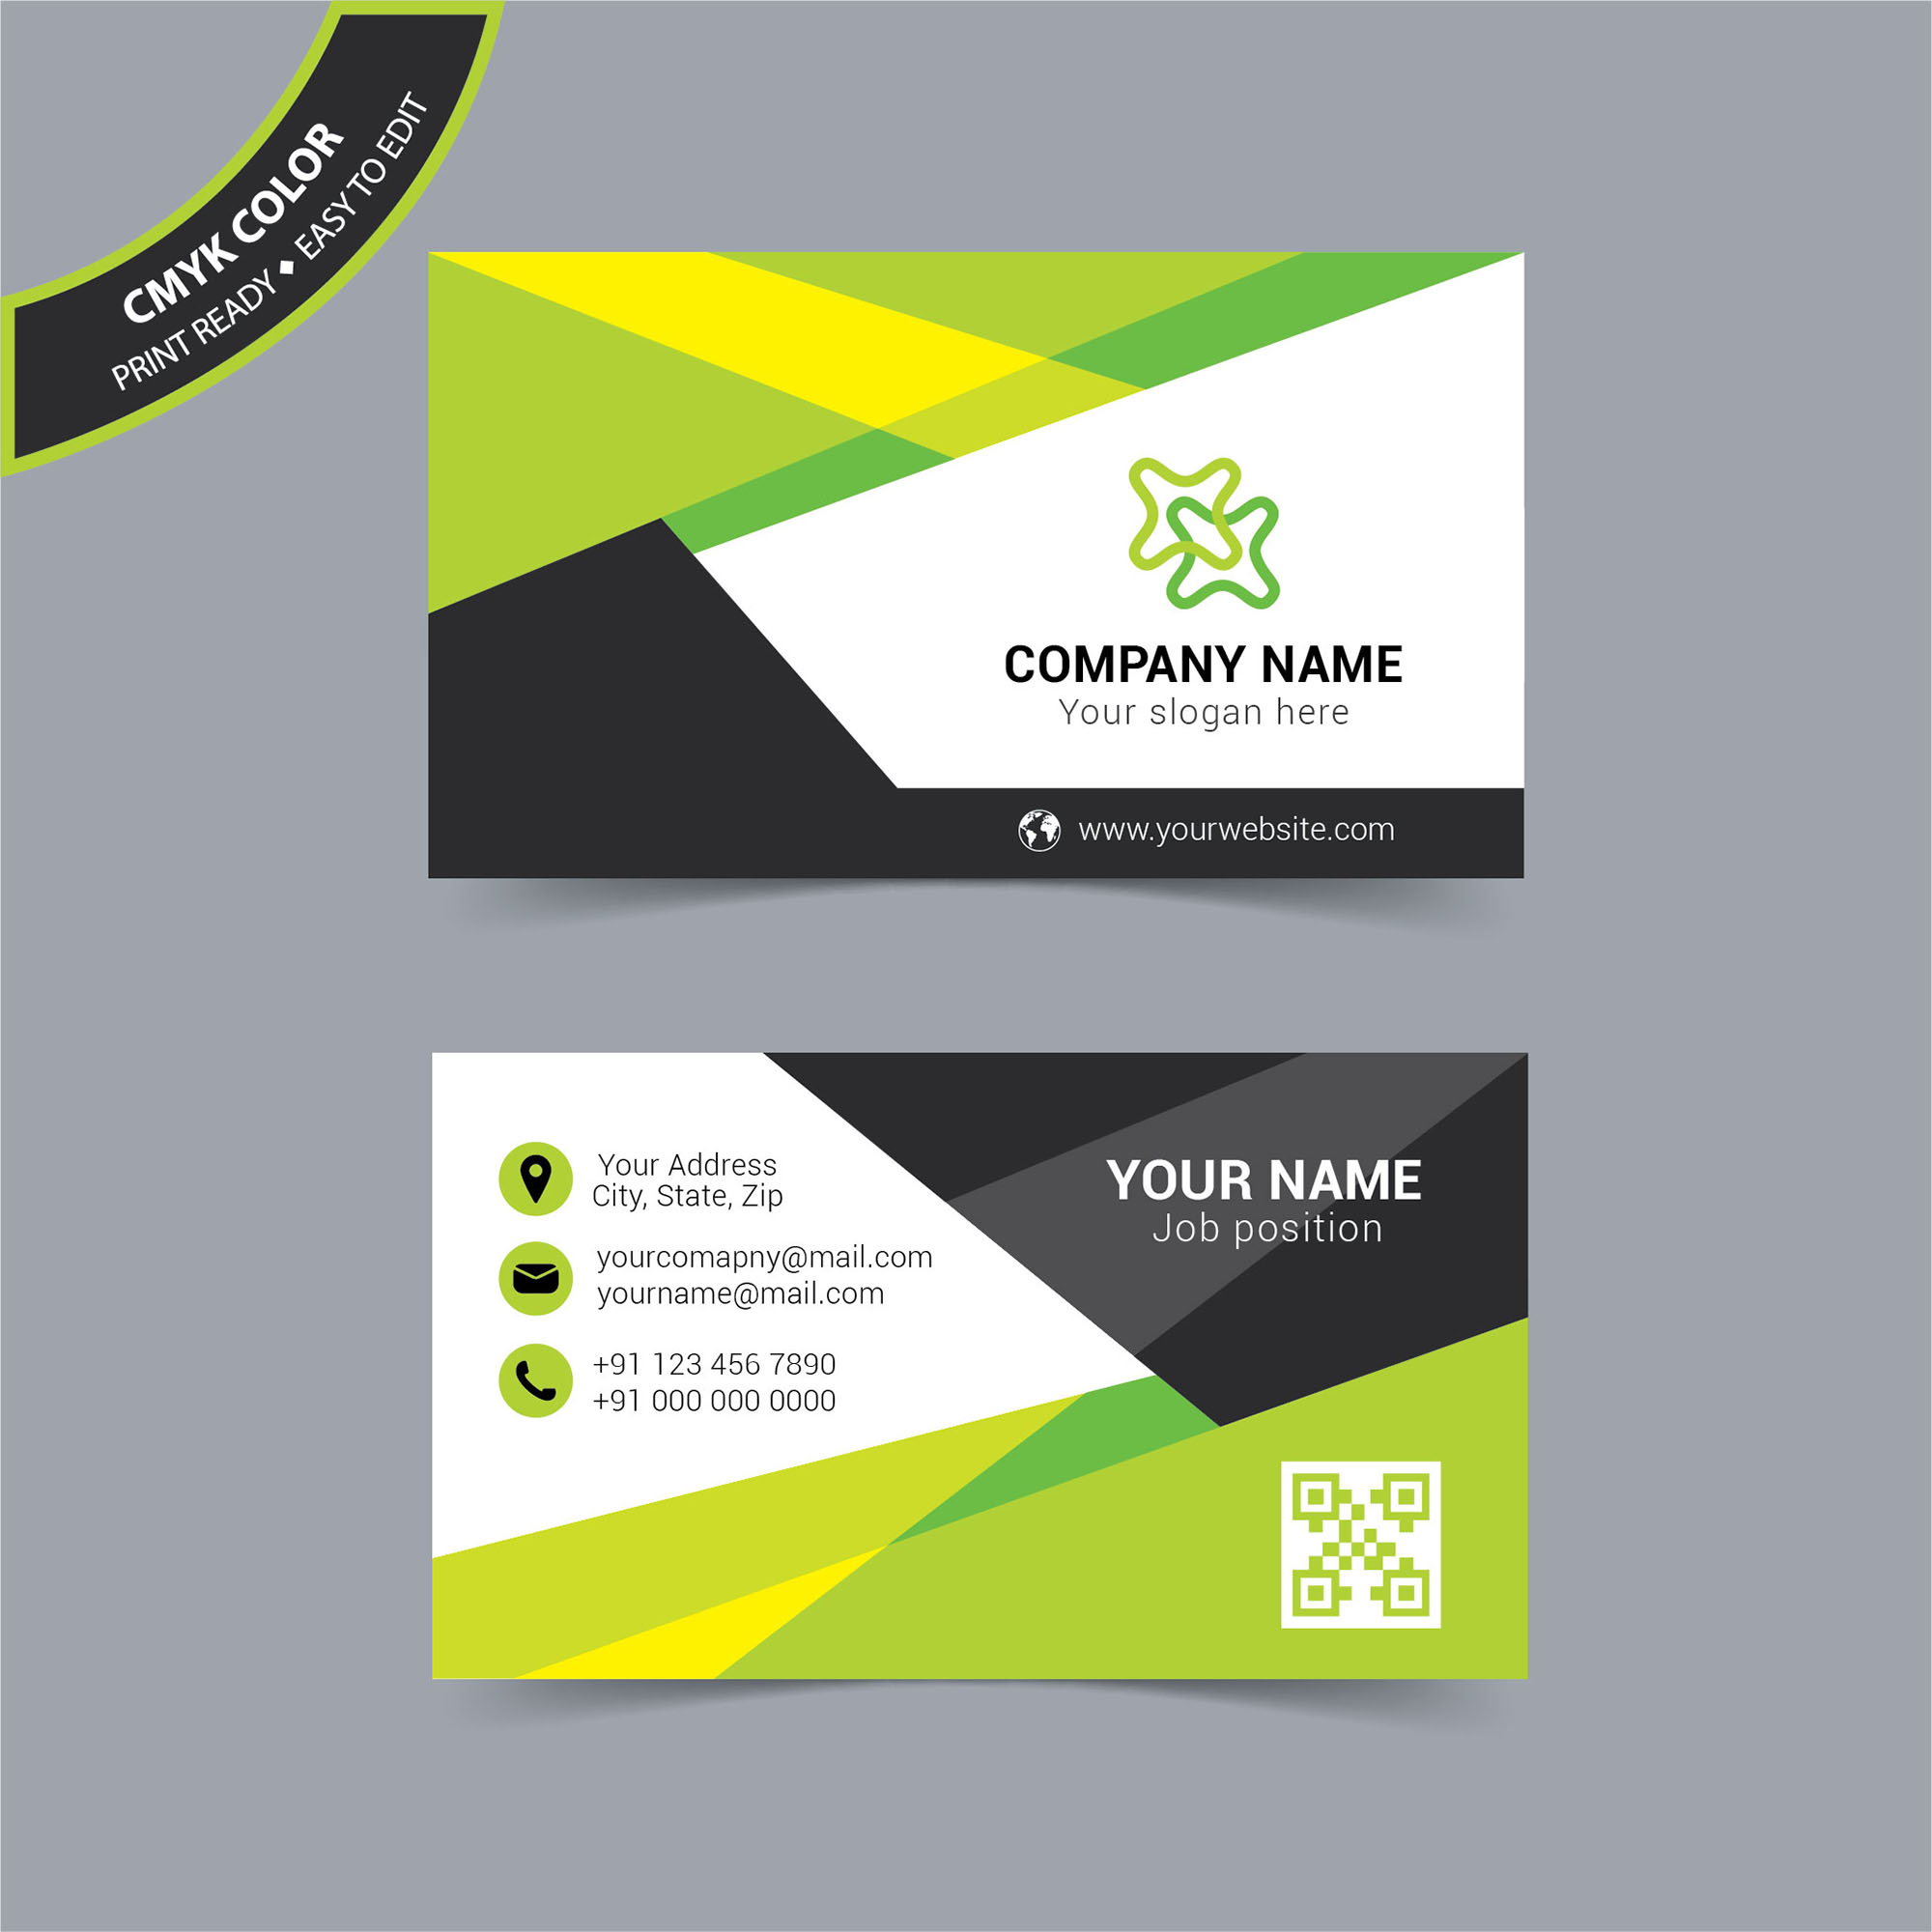 Modern Colorful Business Card Design Free Download Wisxicom - Business cards examples templates